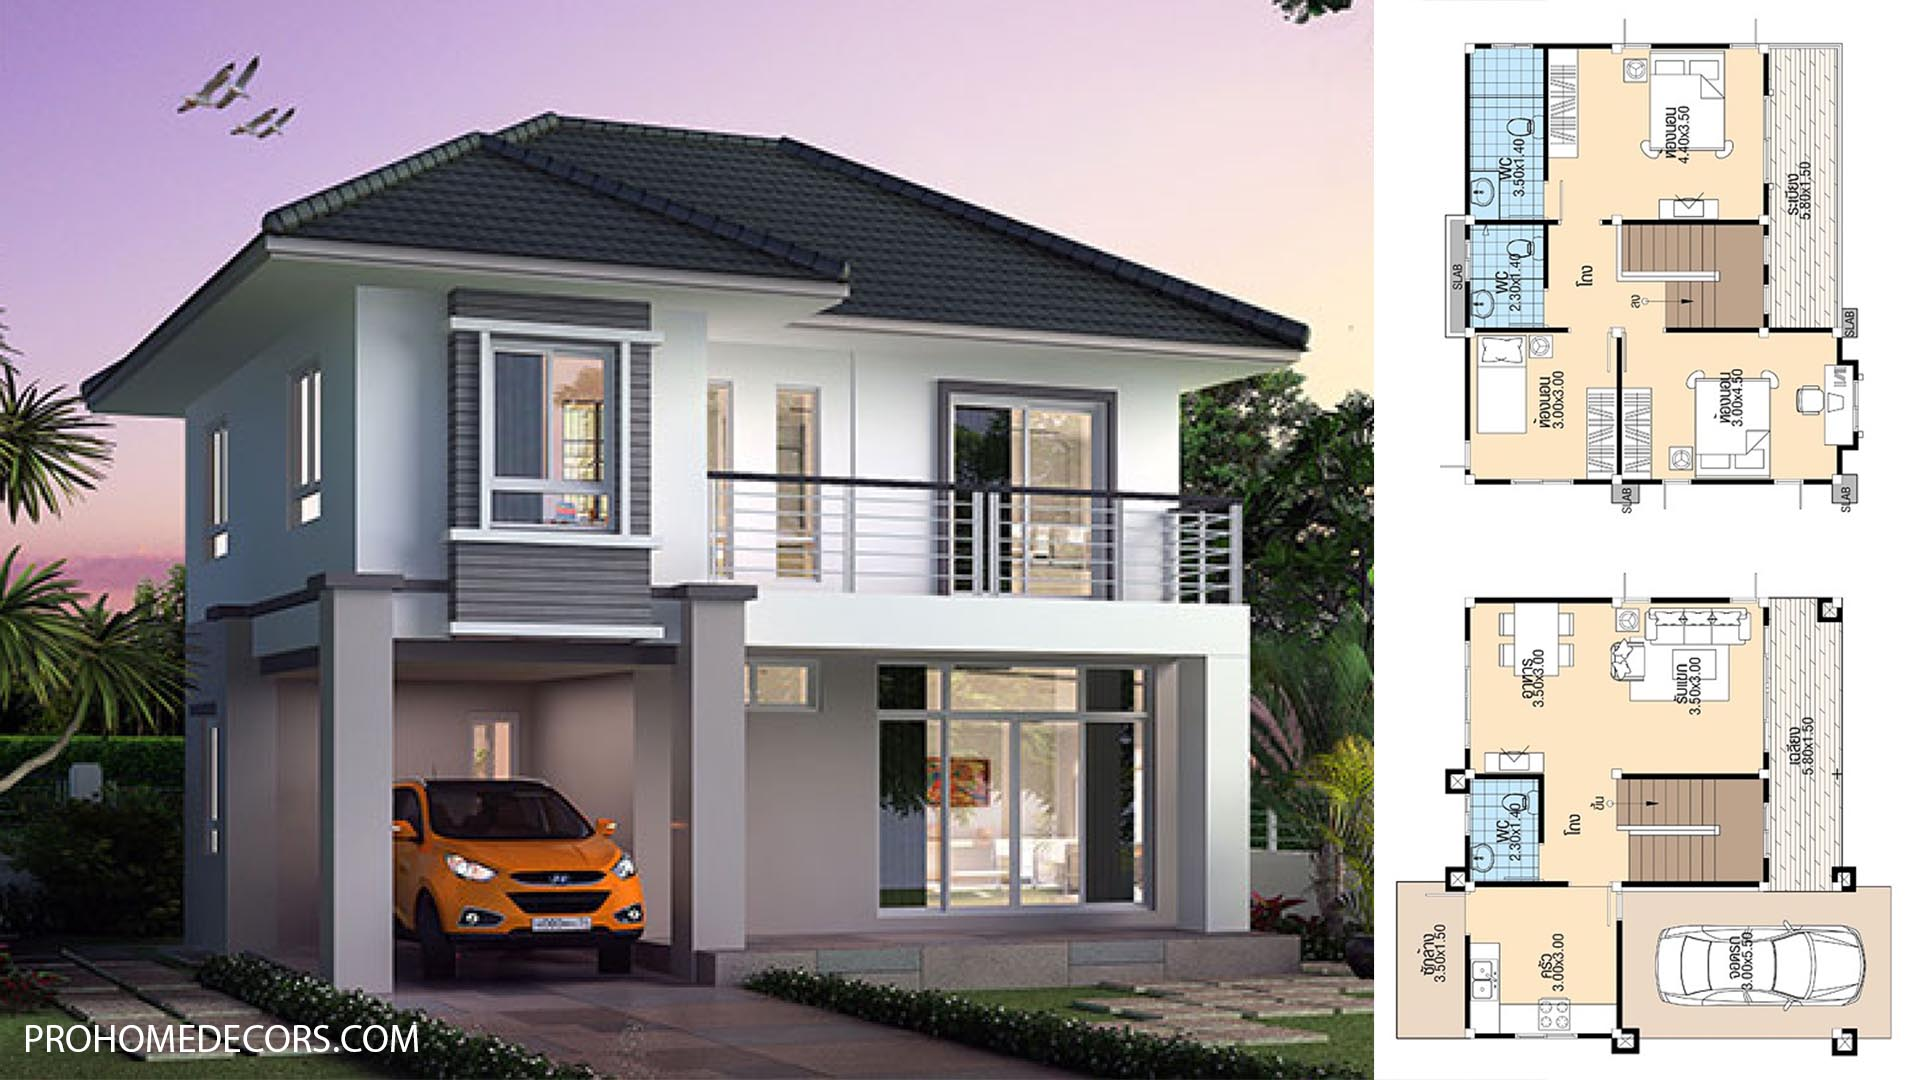 House design Plans 8.8x8.5 with 3 Bedrooms 2